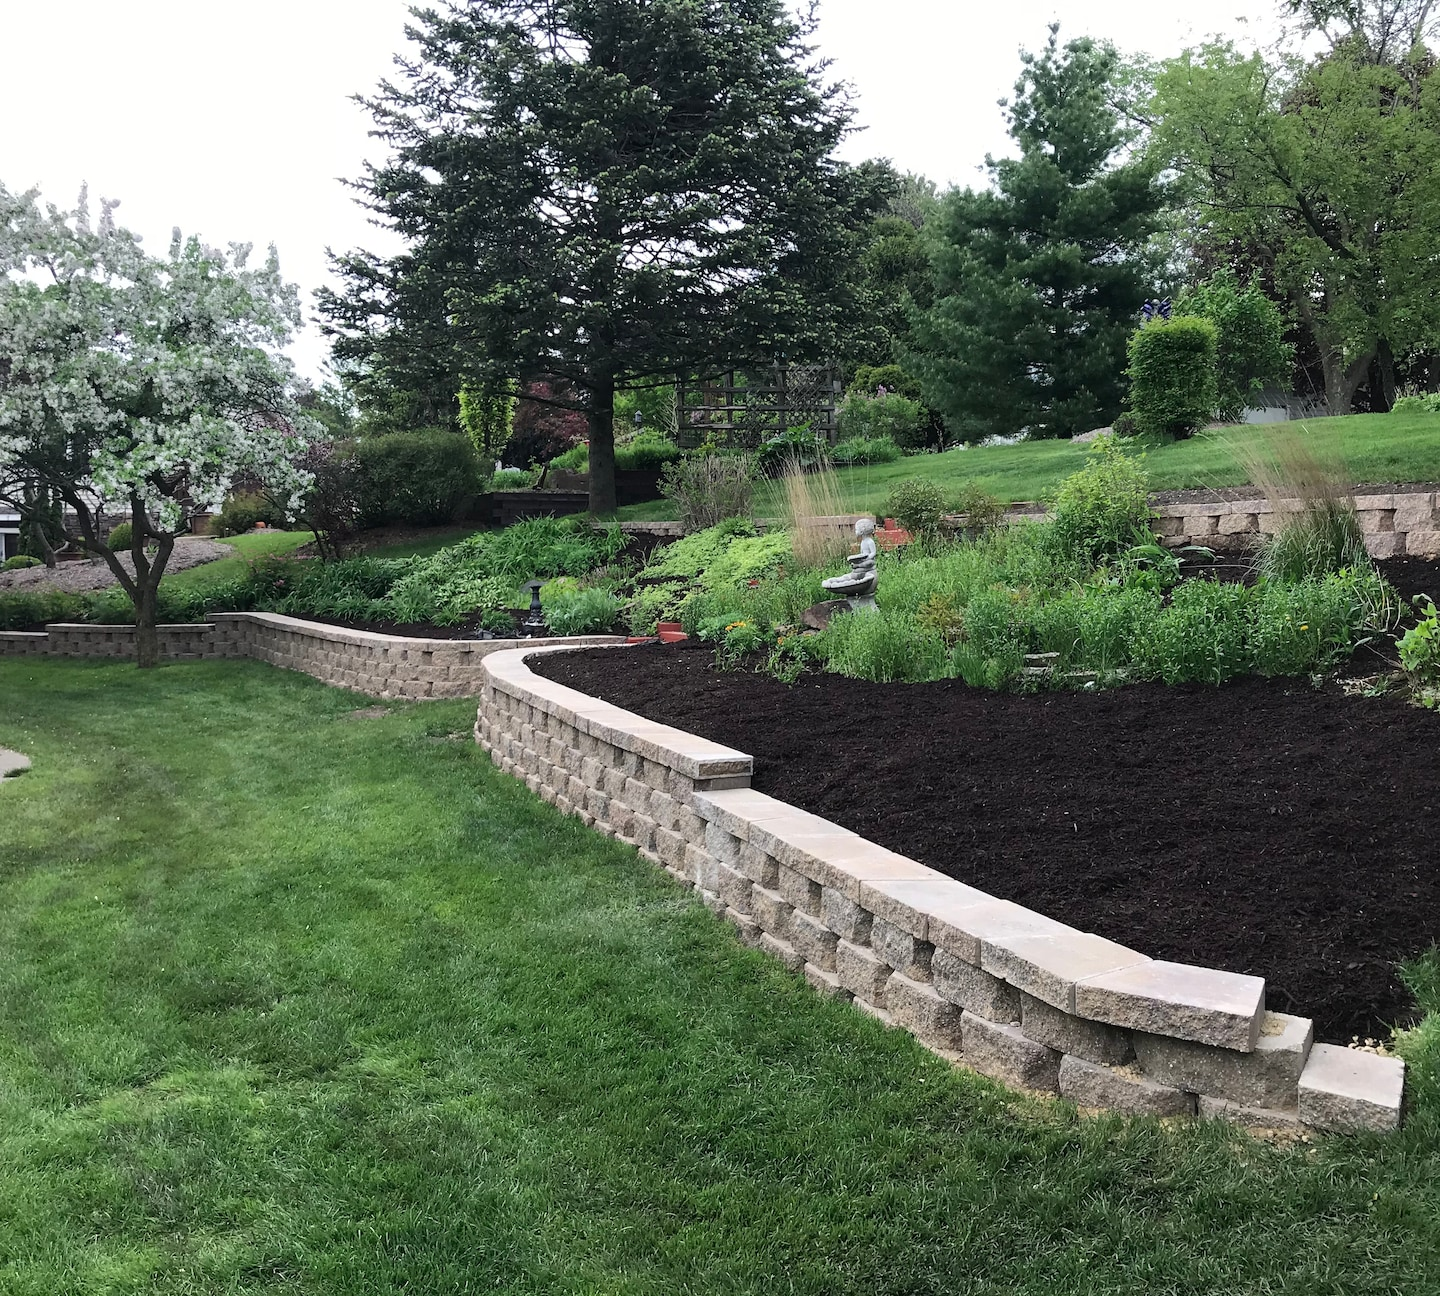 Sue S Retaining Wall (Phase 1)